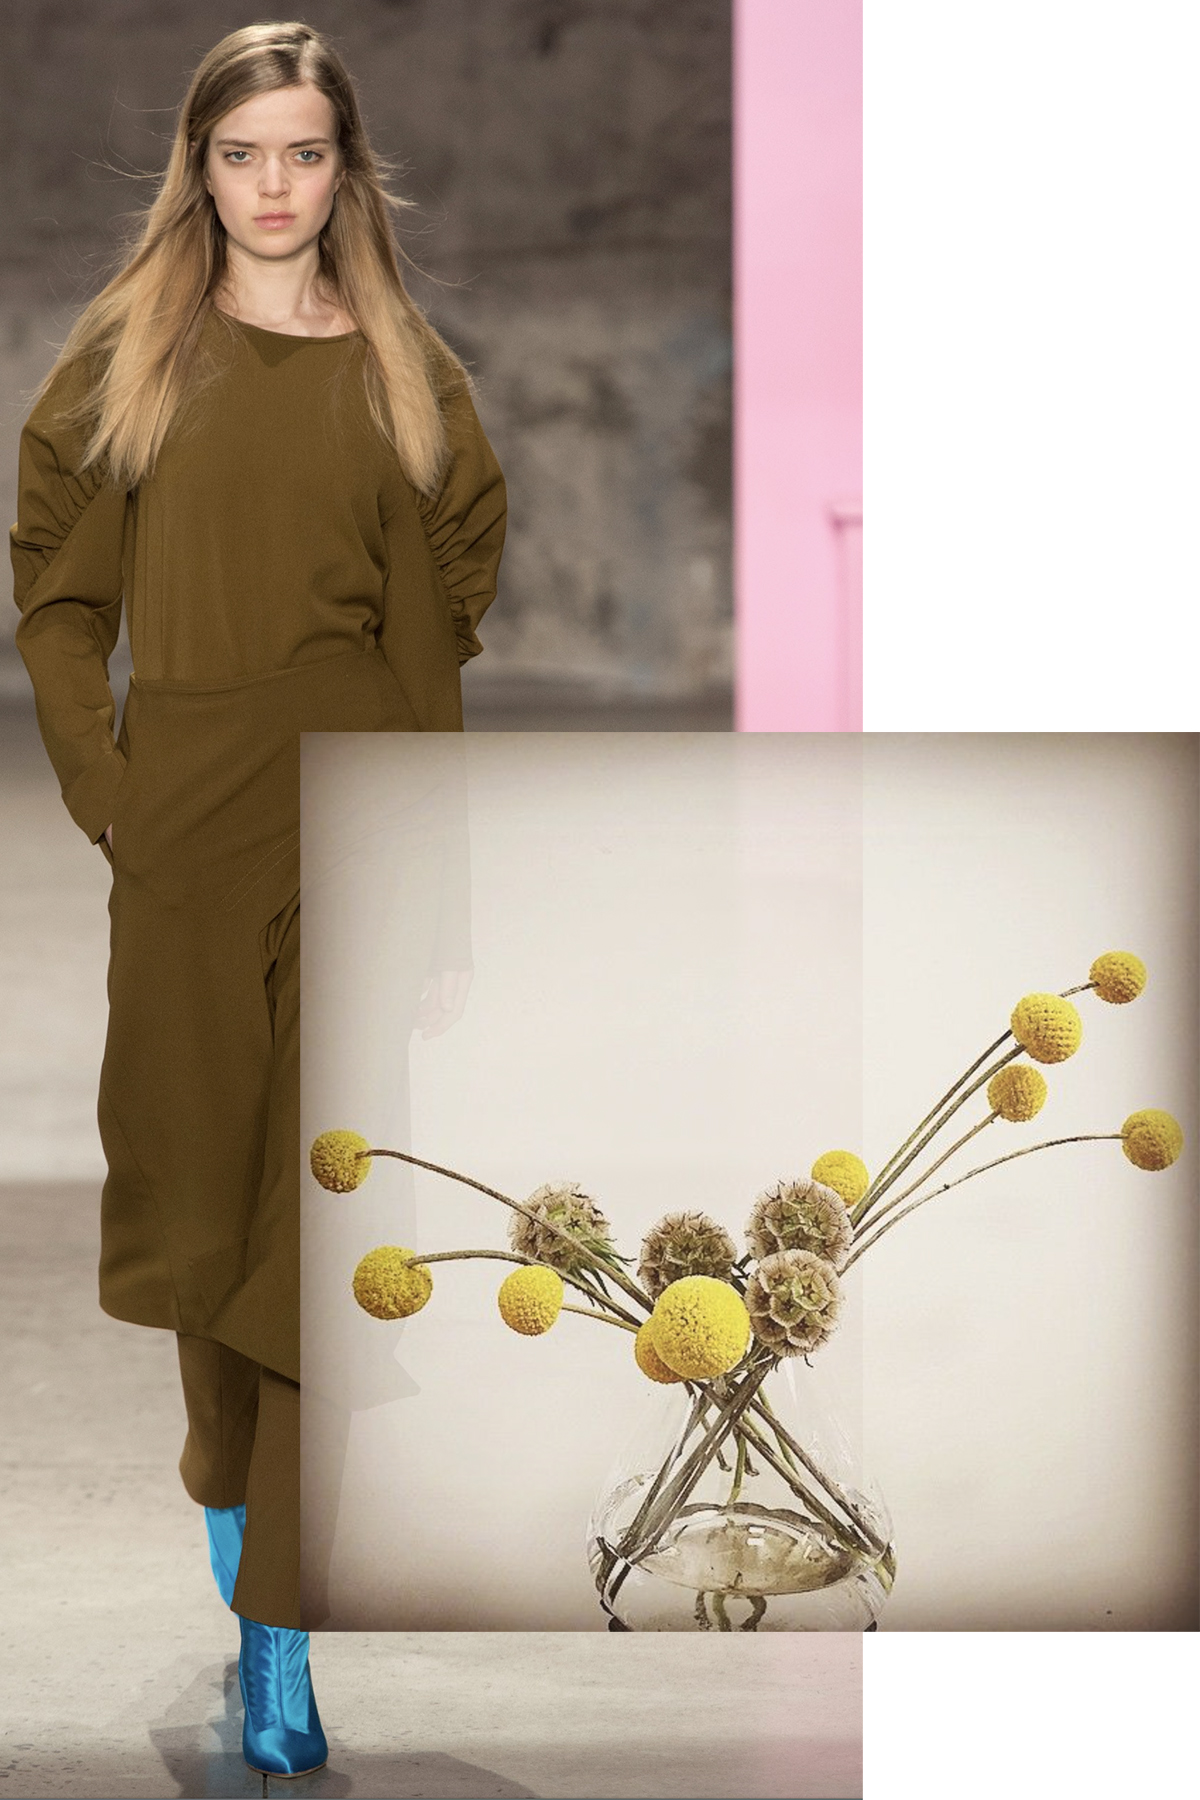 Tibi paired with Scabiosa pods